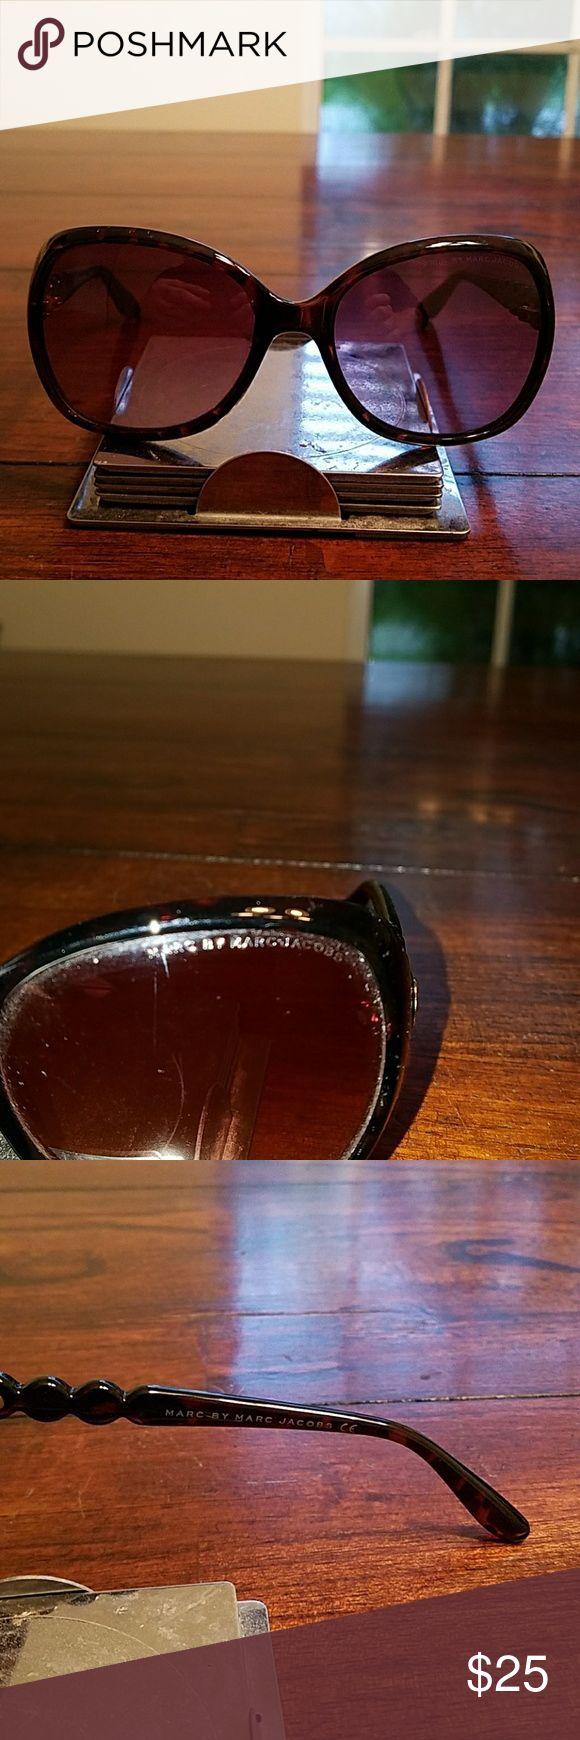 Marc by Marc Jacob's sunglasses Marc by Marc Jacob's brown sunglasses for sale.  Good condition. There are some scratches on the lenses, but it does not affect vision. No case or cleaning cloth. Marc By Marc Jacobs Accessories Sunglasses